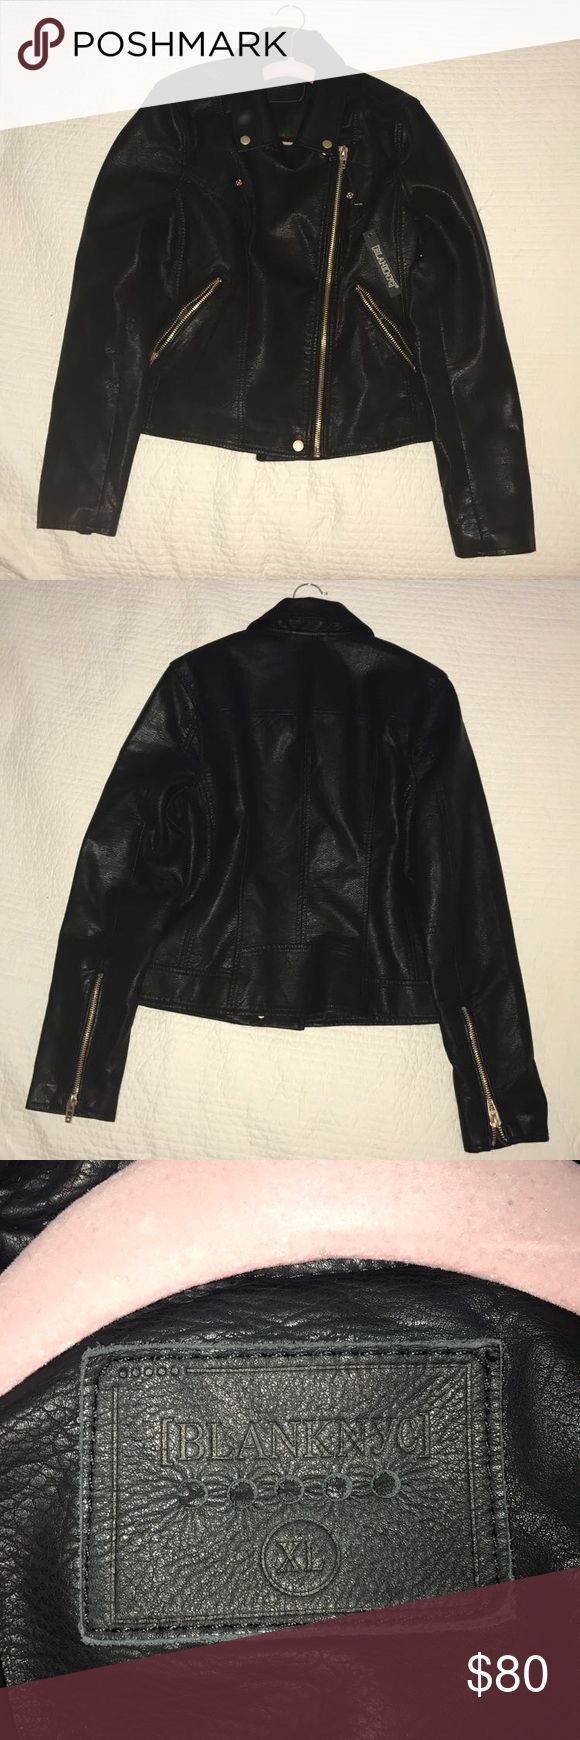 BLANKNYC black faux leather jacket BRAND NEW NEVER USED leather jacket with tags still attached! Blank NYC Jackets & Coats